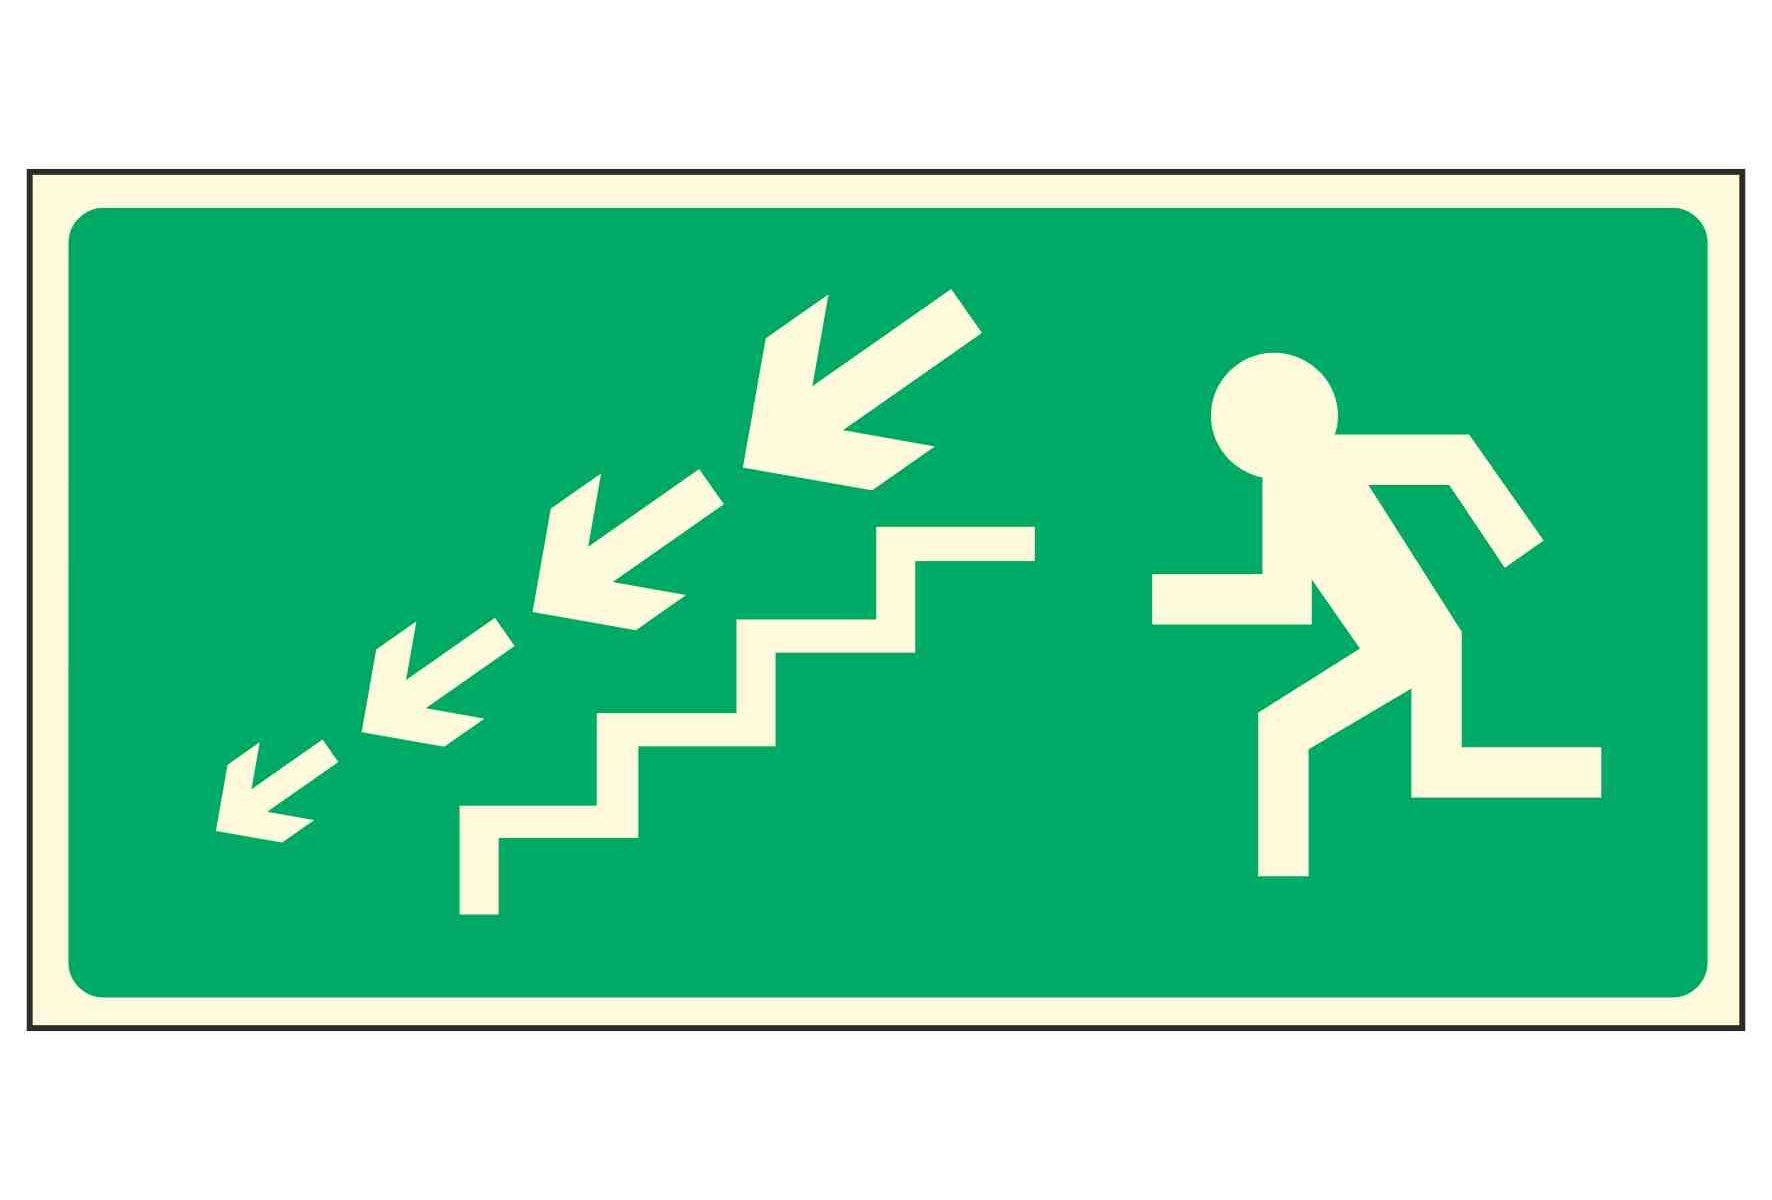 Running Man Left / Stairs Down Left Arrows - EEC 92/58